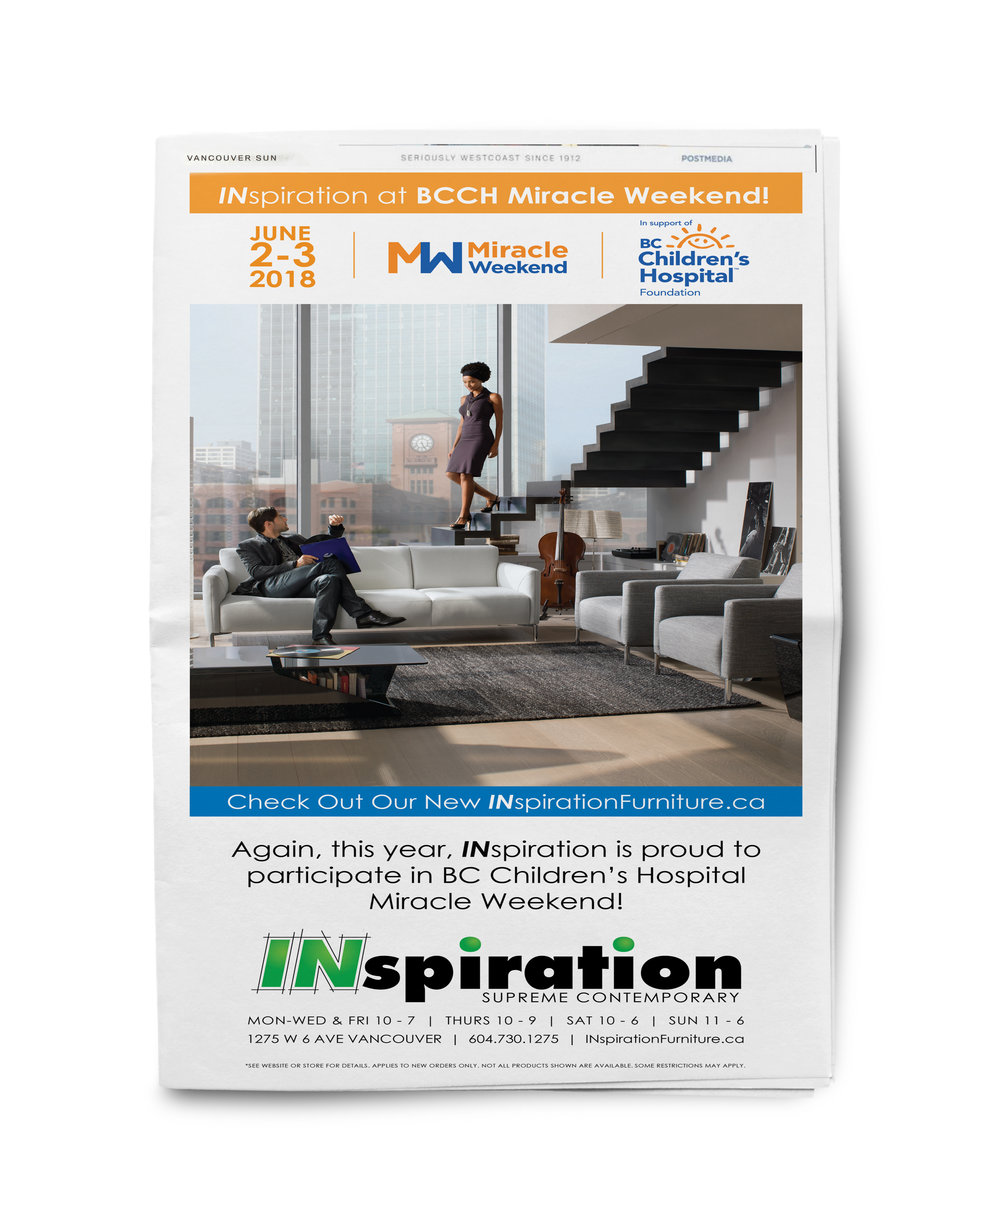 INspiration_Vancouver_Newspaper21.jpg